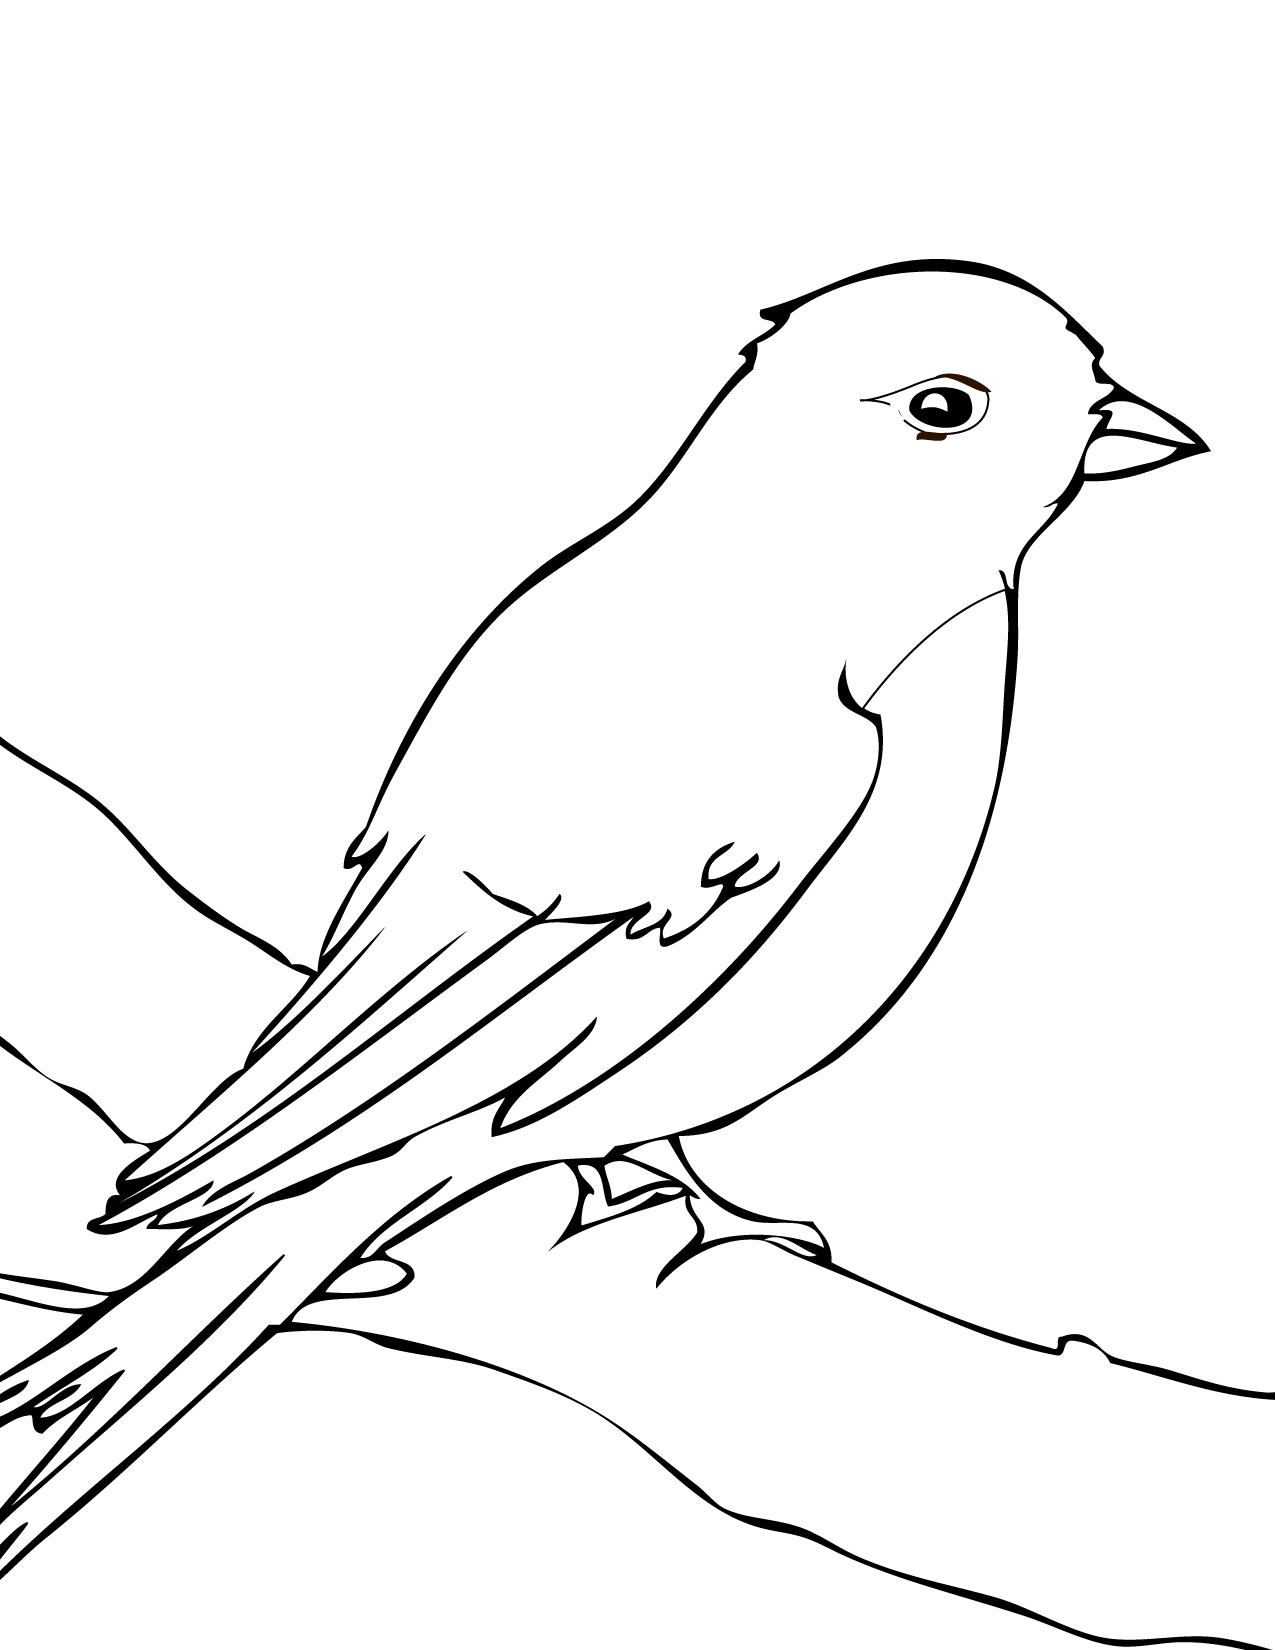 Songbird Coloring Download Songbird Coloring For Free